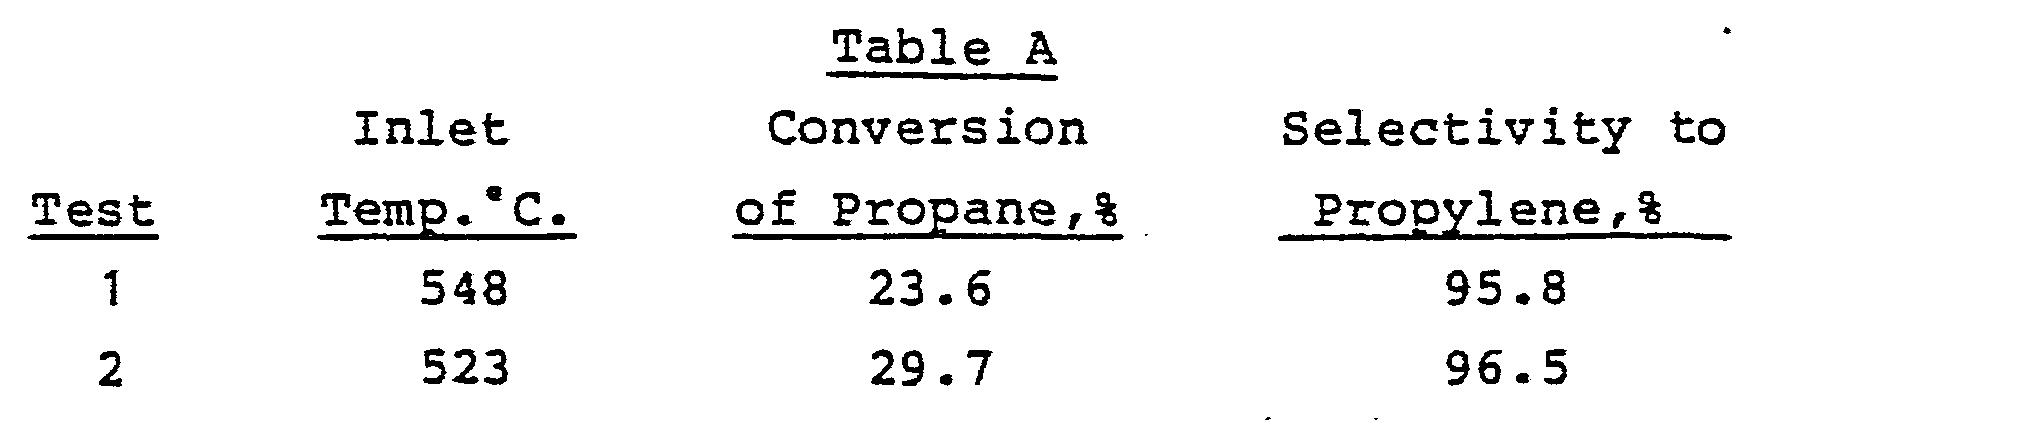 Ep0117146a1 Conversion Of Propane To Acrylic Acid Google Patents